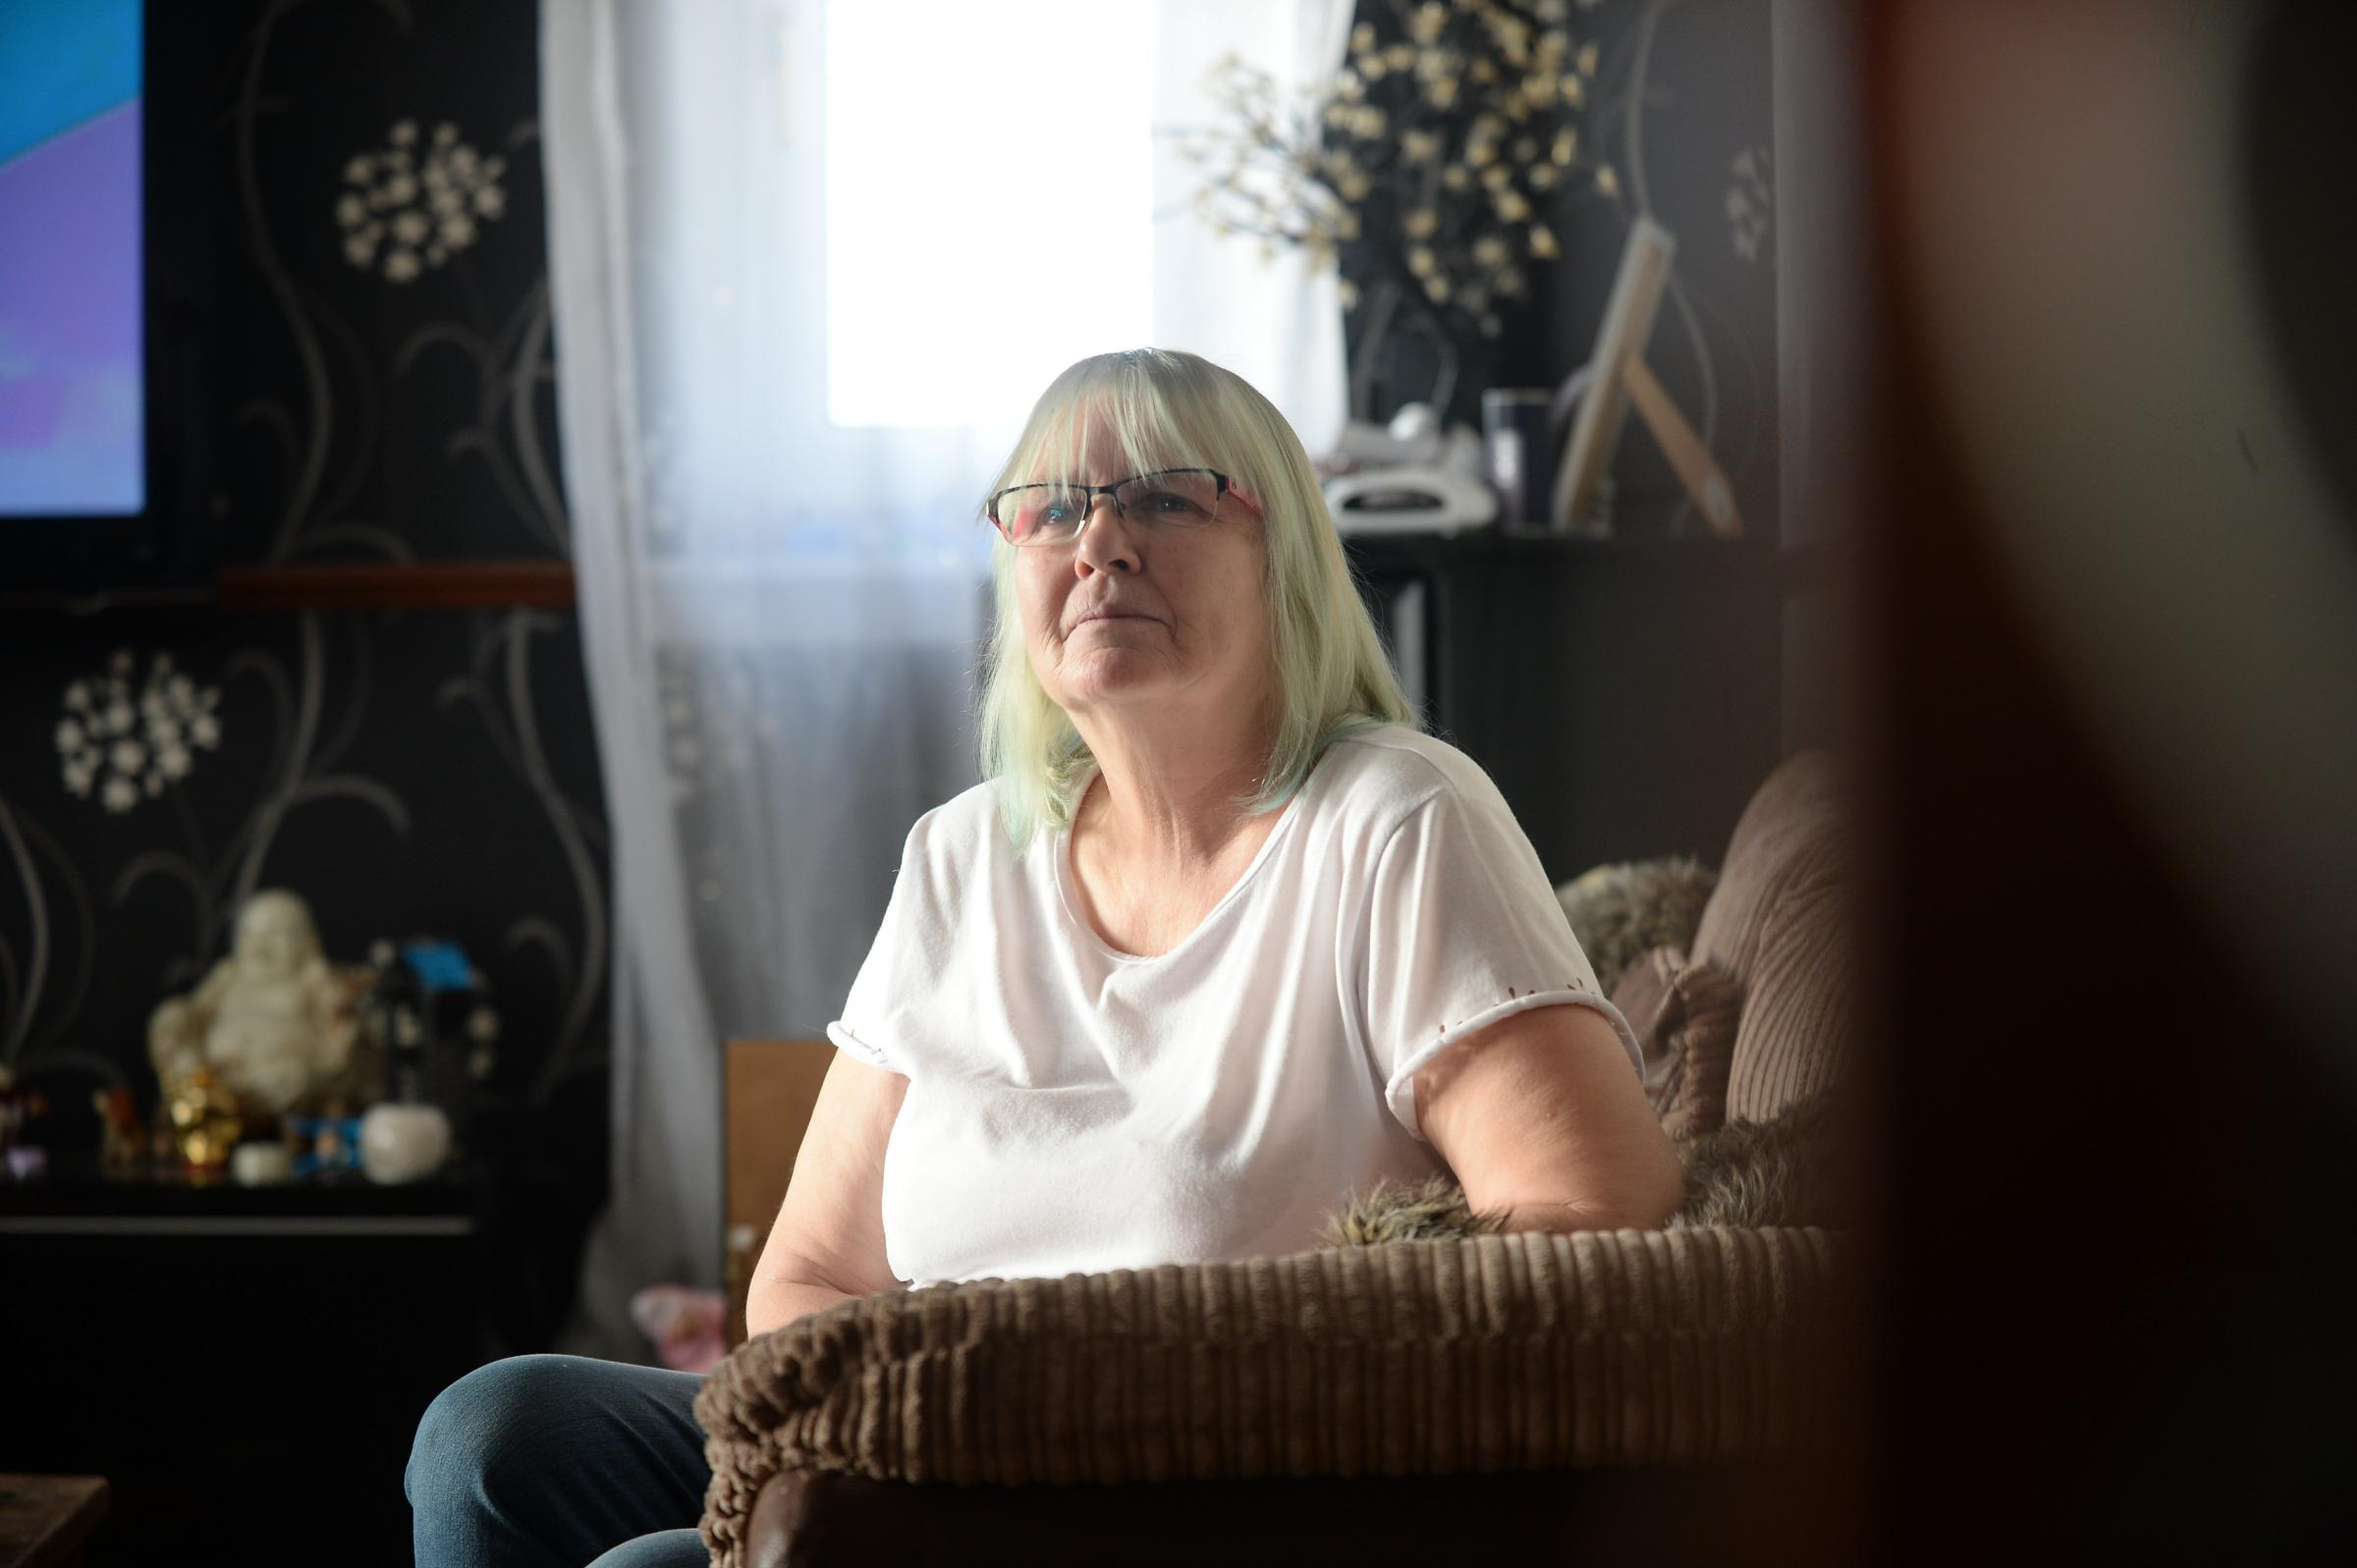 Mary Smith who has been waiting for an operation to help her for more than a year after her surgeon left the health board and a replacement was not found.  (Photo by Kirsty Anderson)